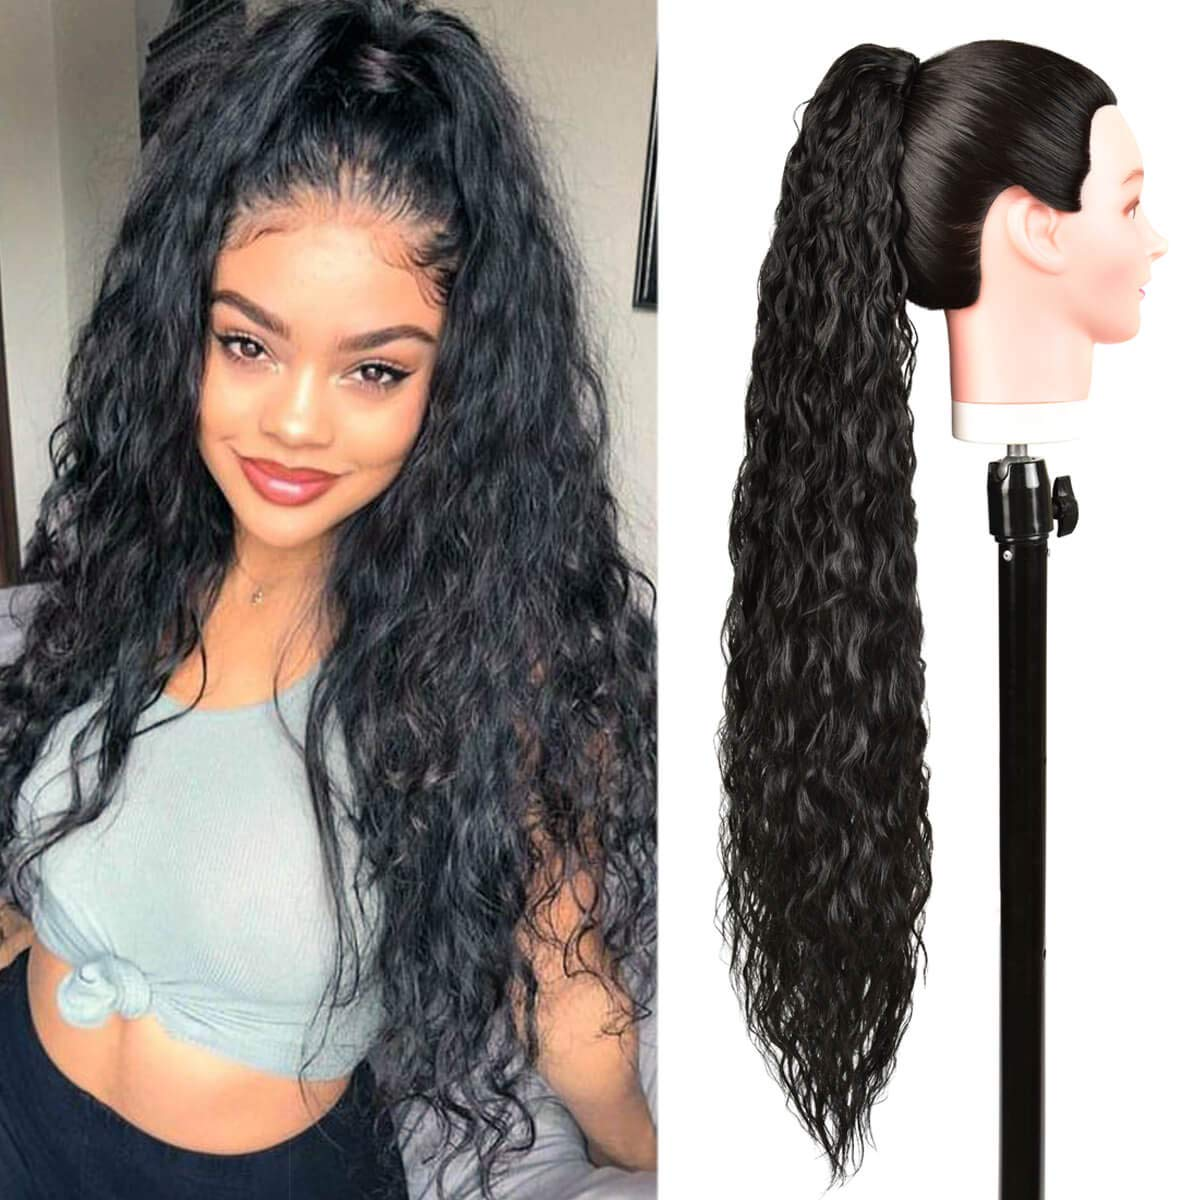 Max 84% OFF BHF 30inch Jacksonville Mall Long Curly Drawstring Heat Ponytail Resist Extension